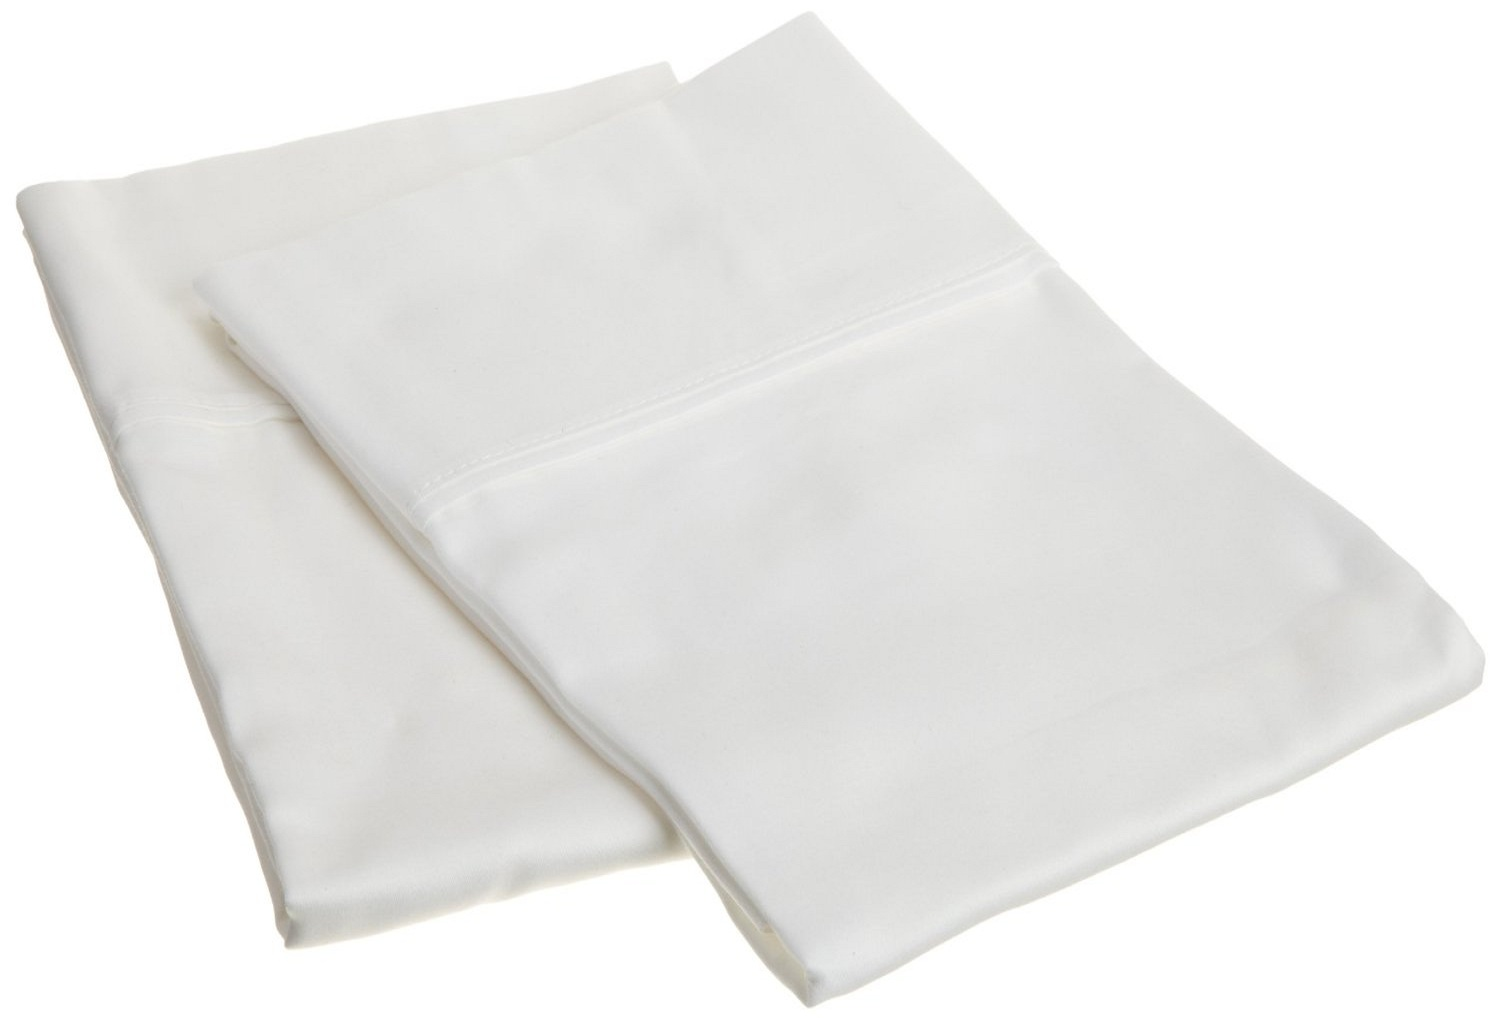 Highest Rated Bed Sheets Soft Sateen Weave Cotton Pillowcases Set Of 2 300 Thread